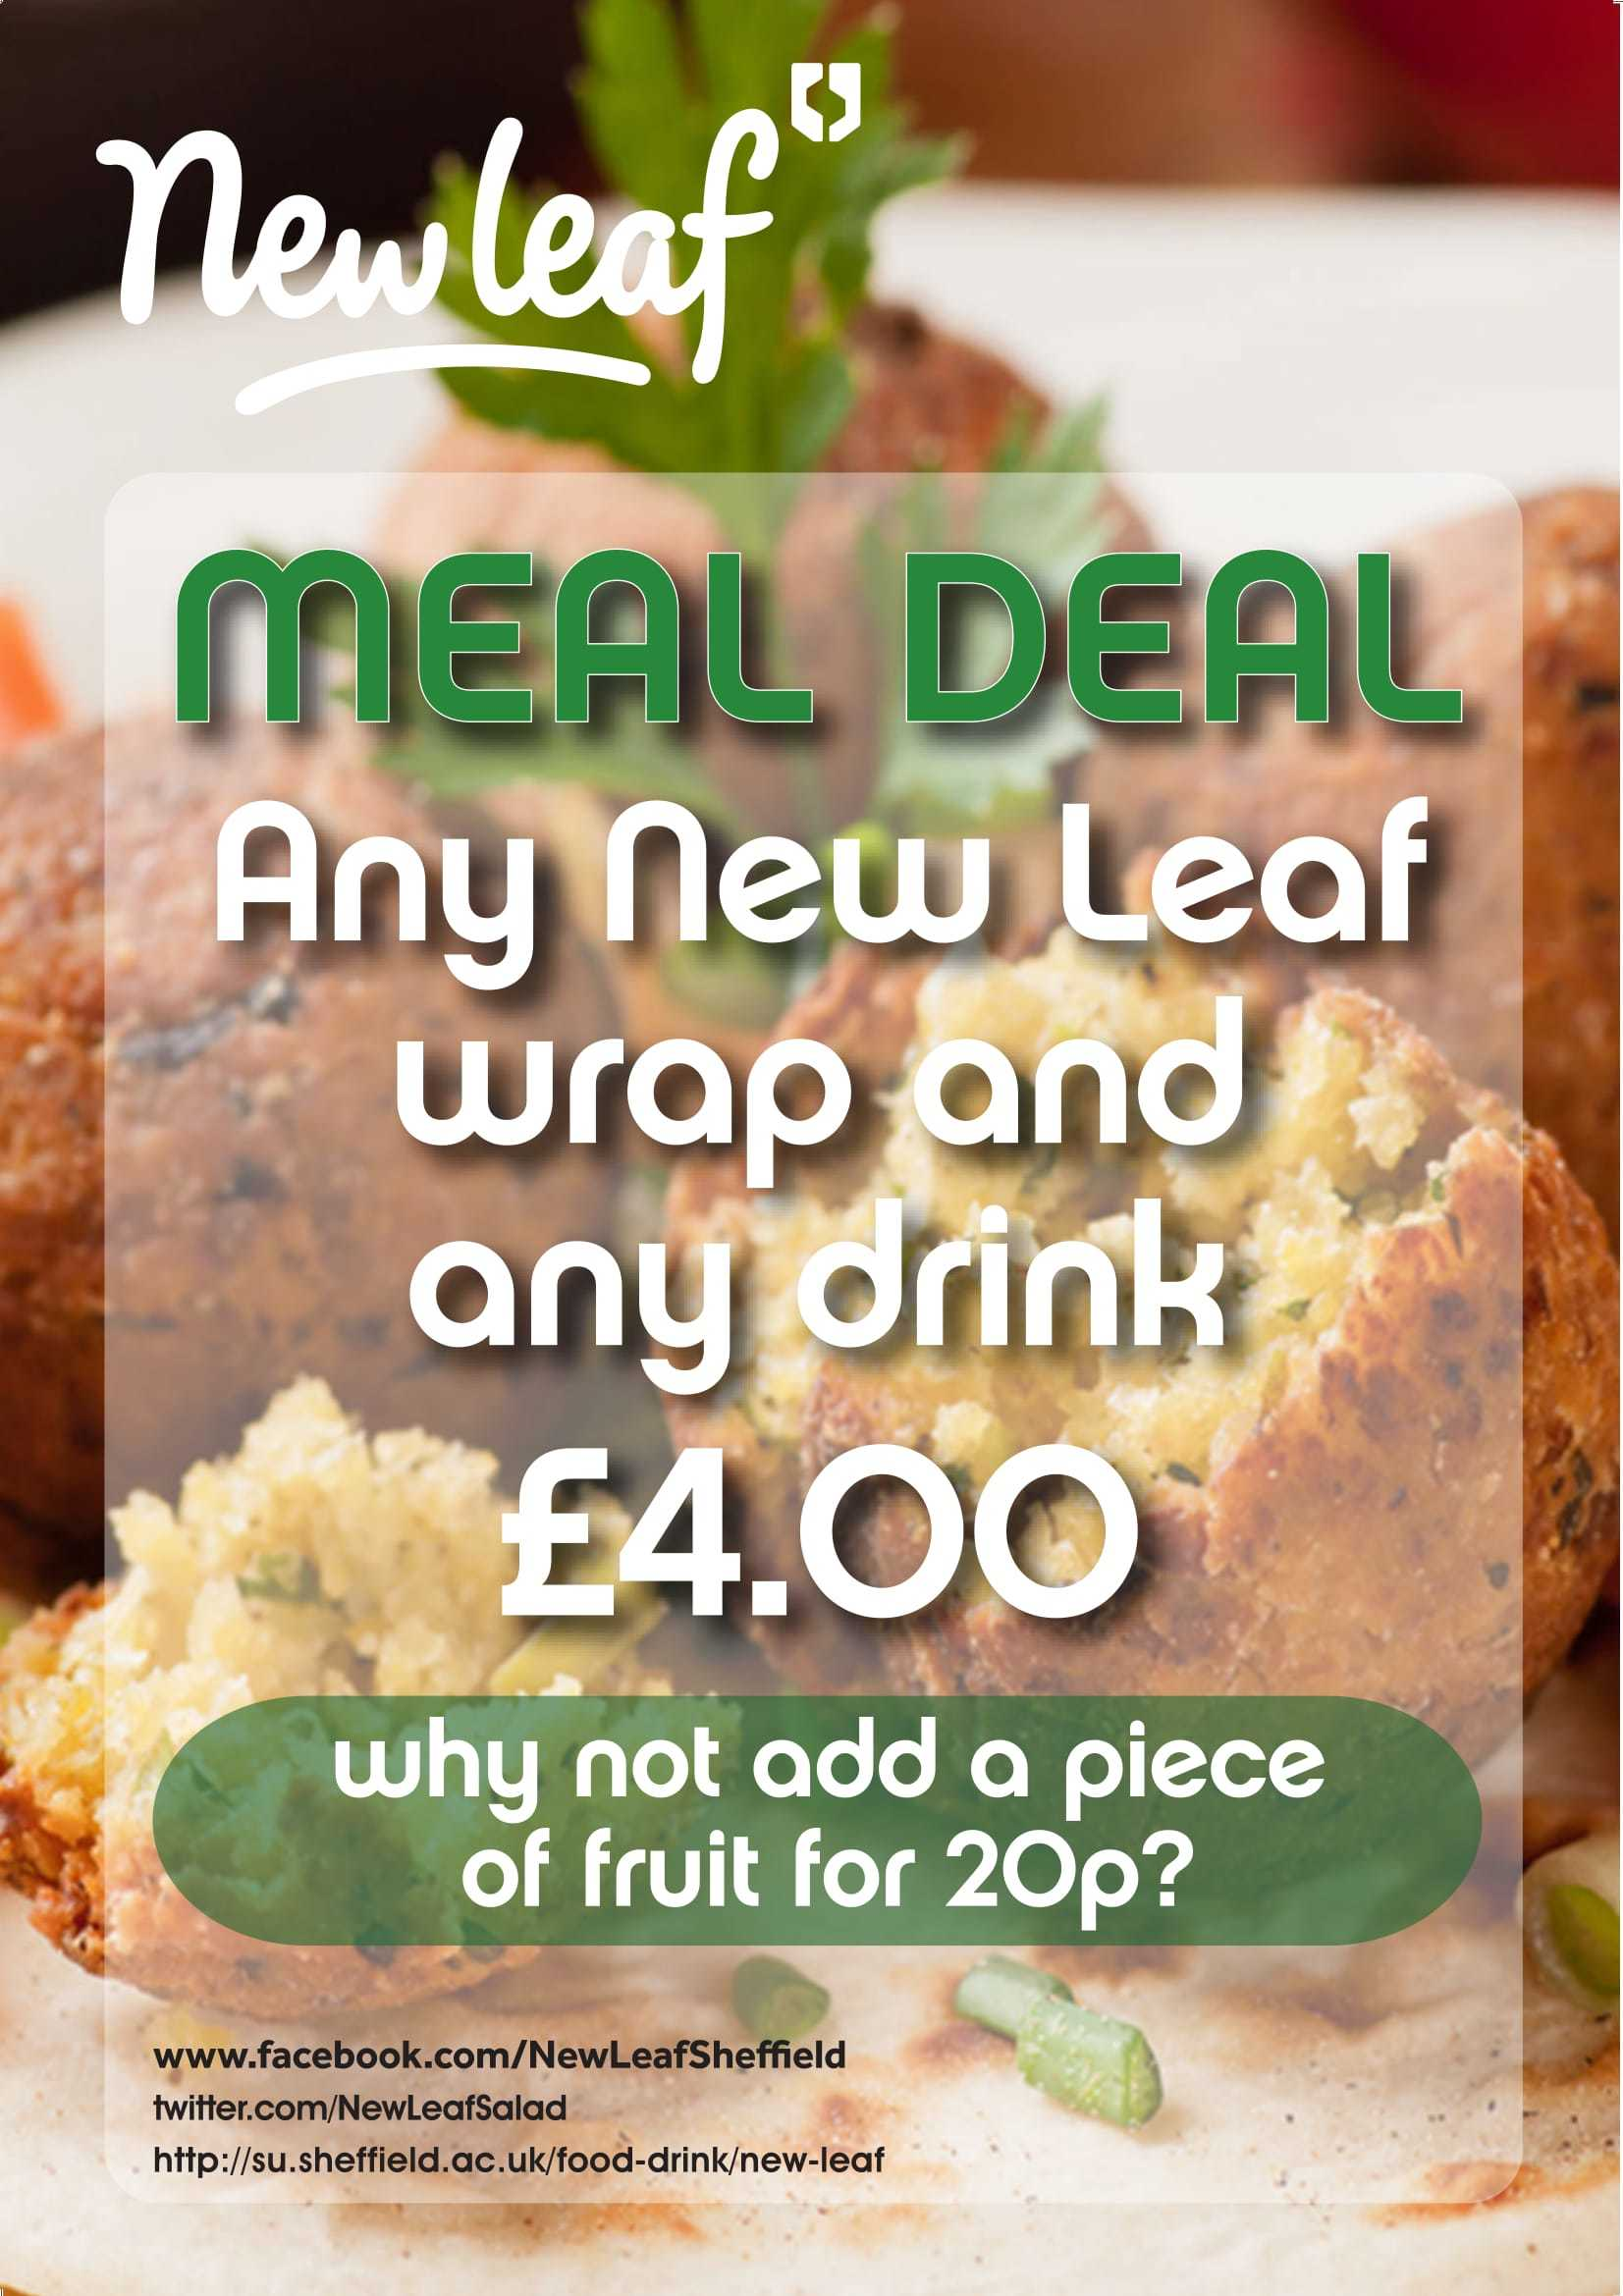 New leaf meal deal